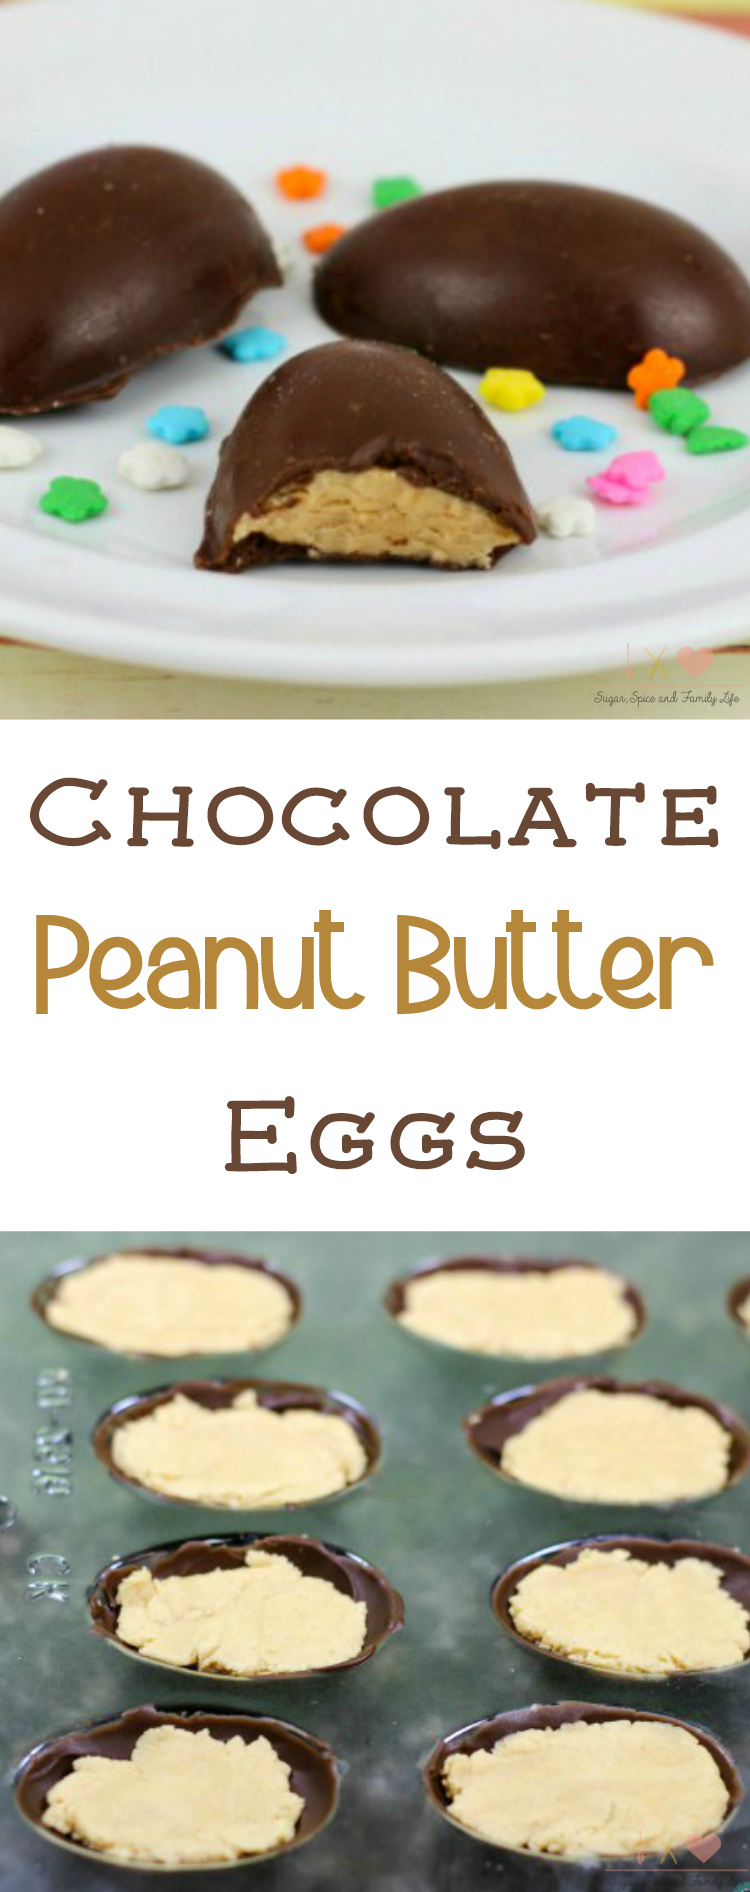 Chocolate Peanut Butter Eggs Recipe